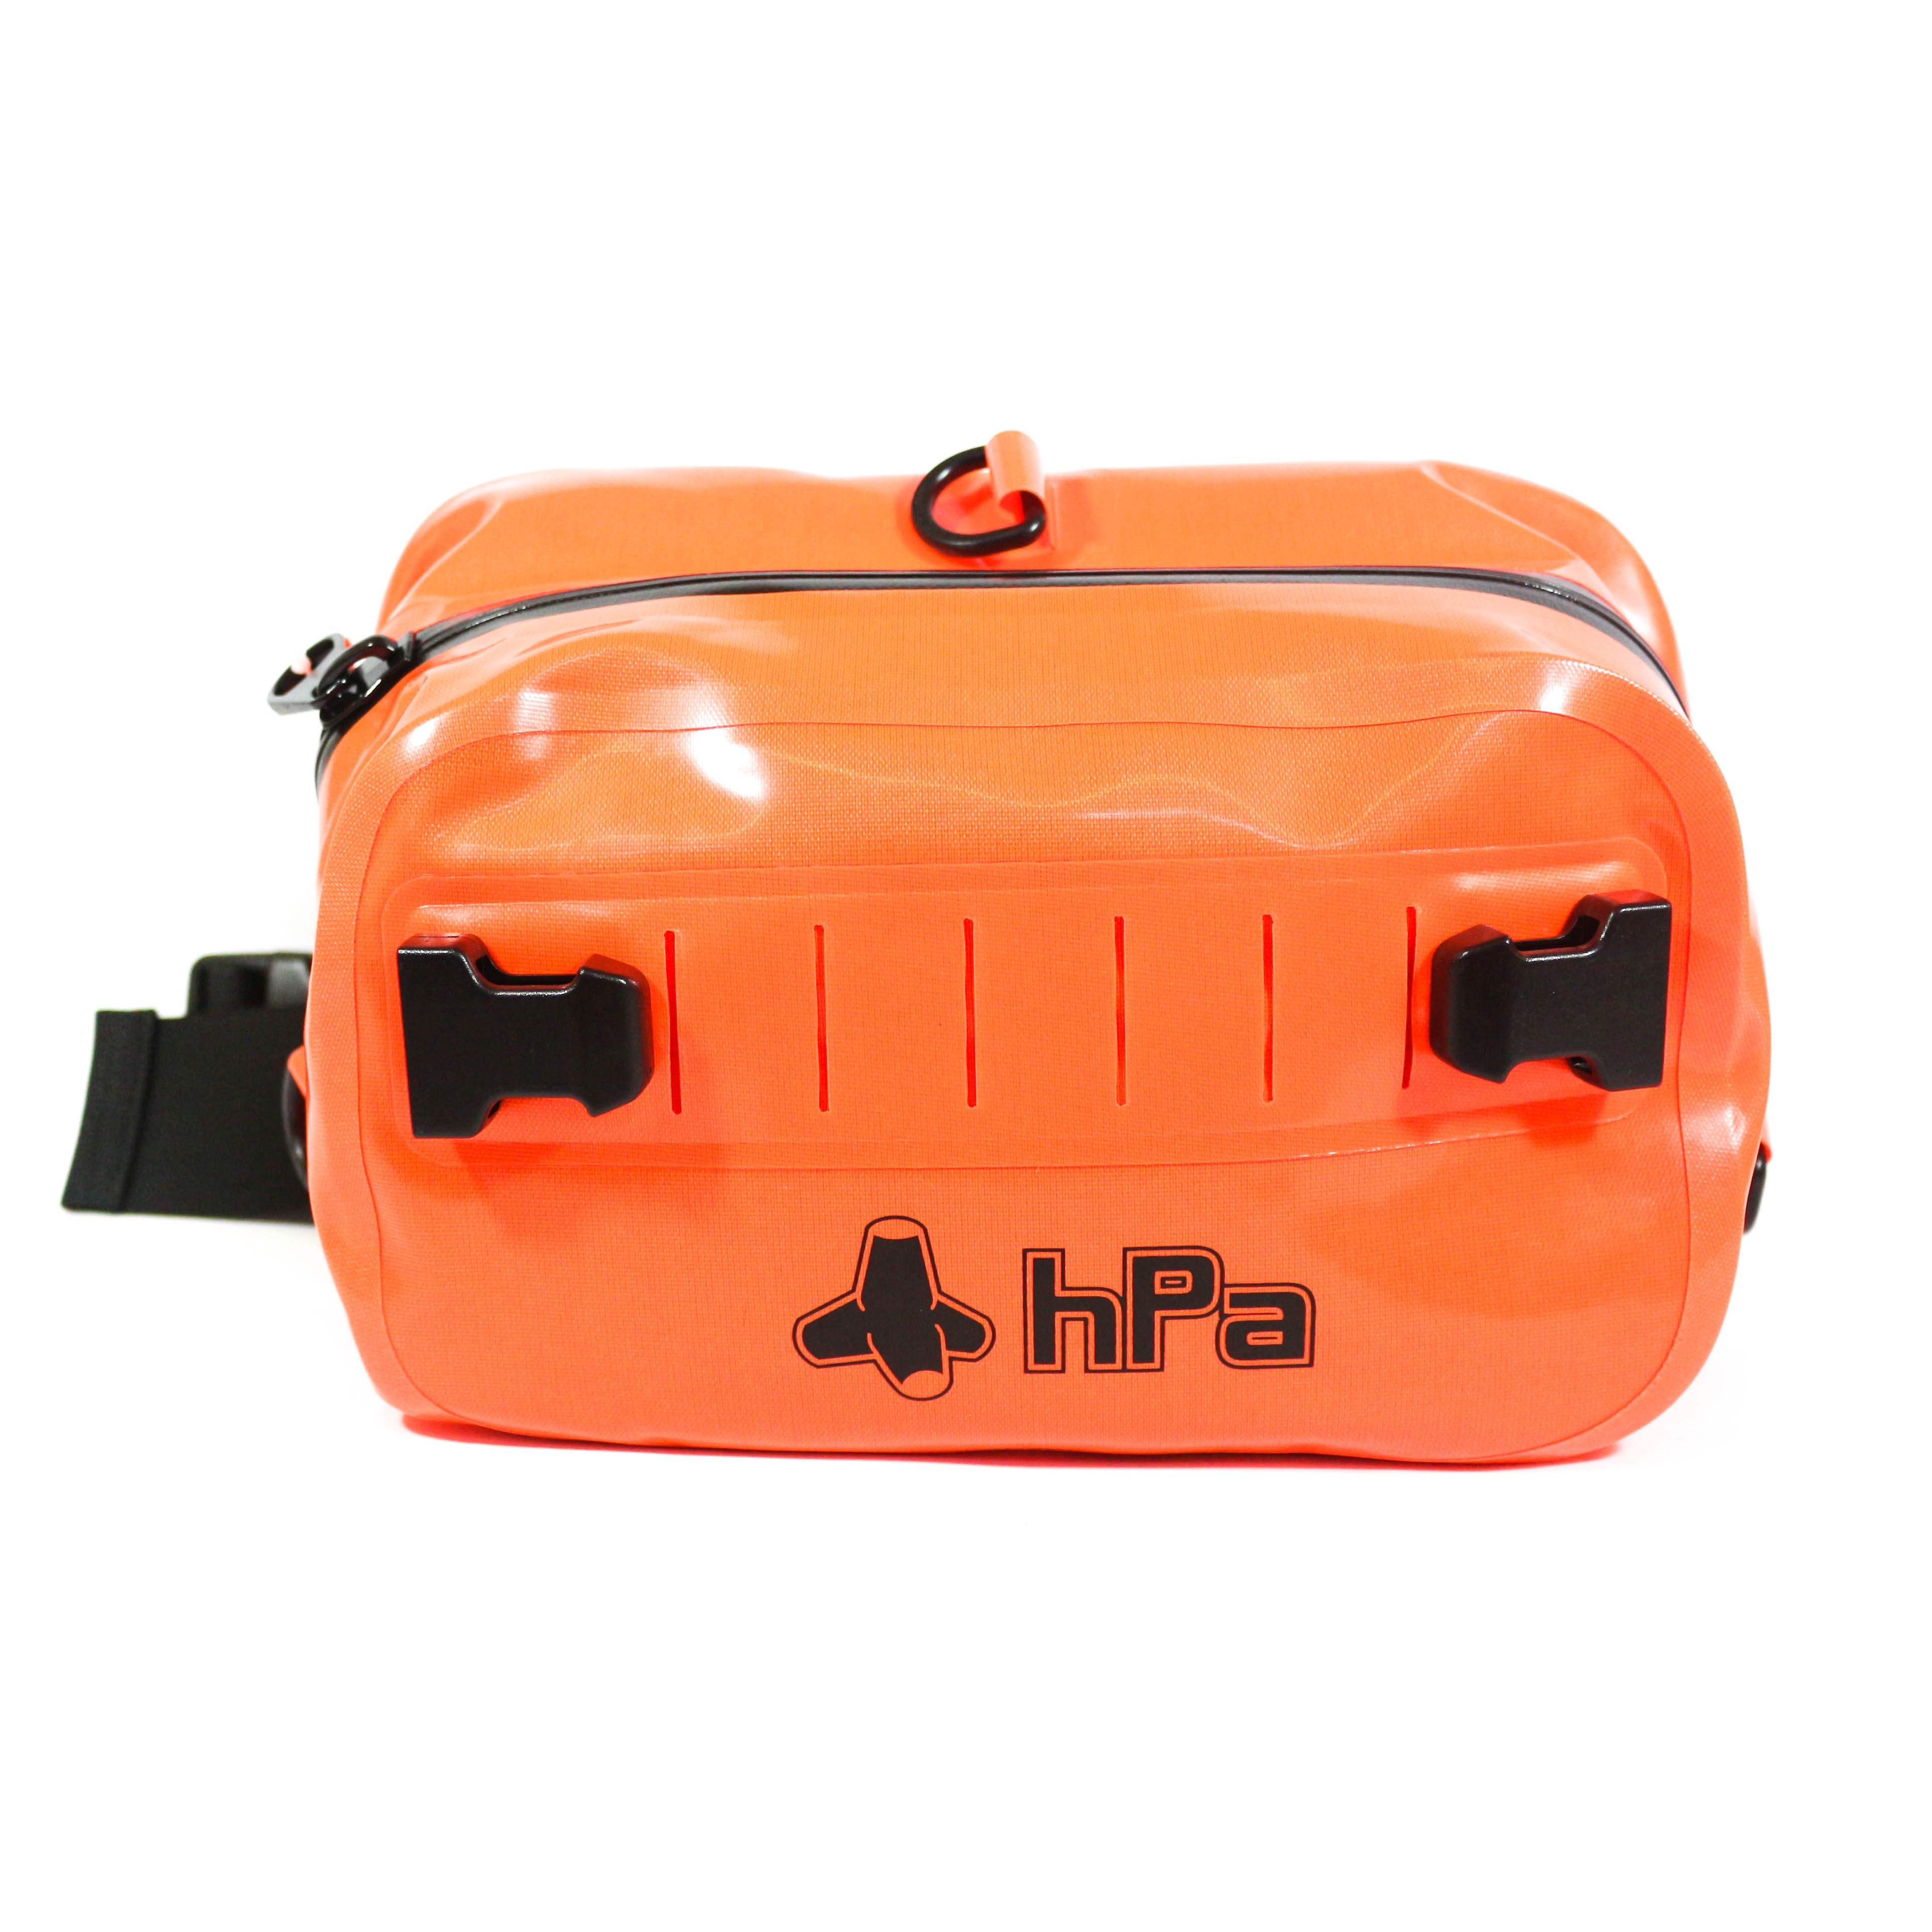 HPA Infladry 6 Waistpack 27 x 18 x 10cm 6 litres Orange (0054)